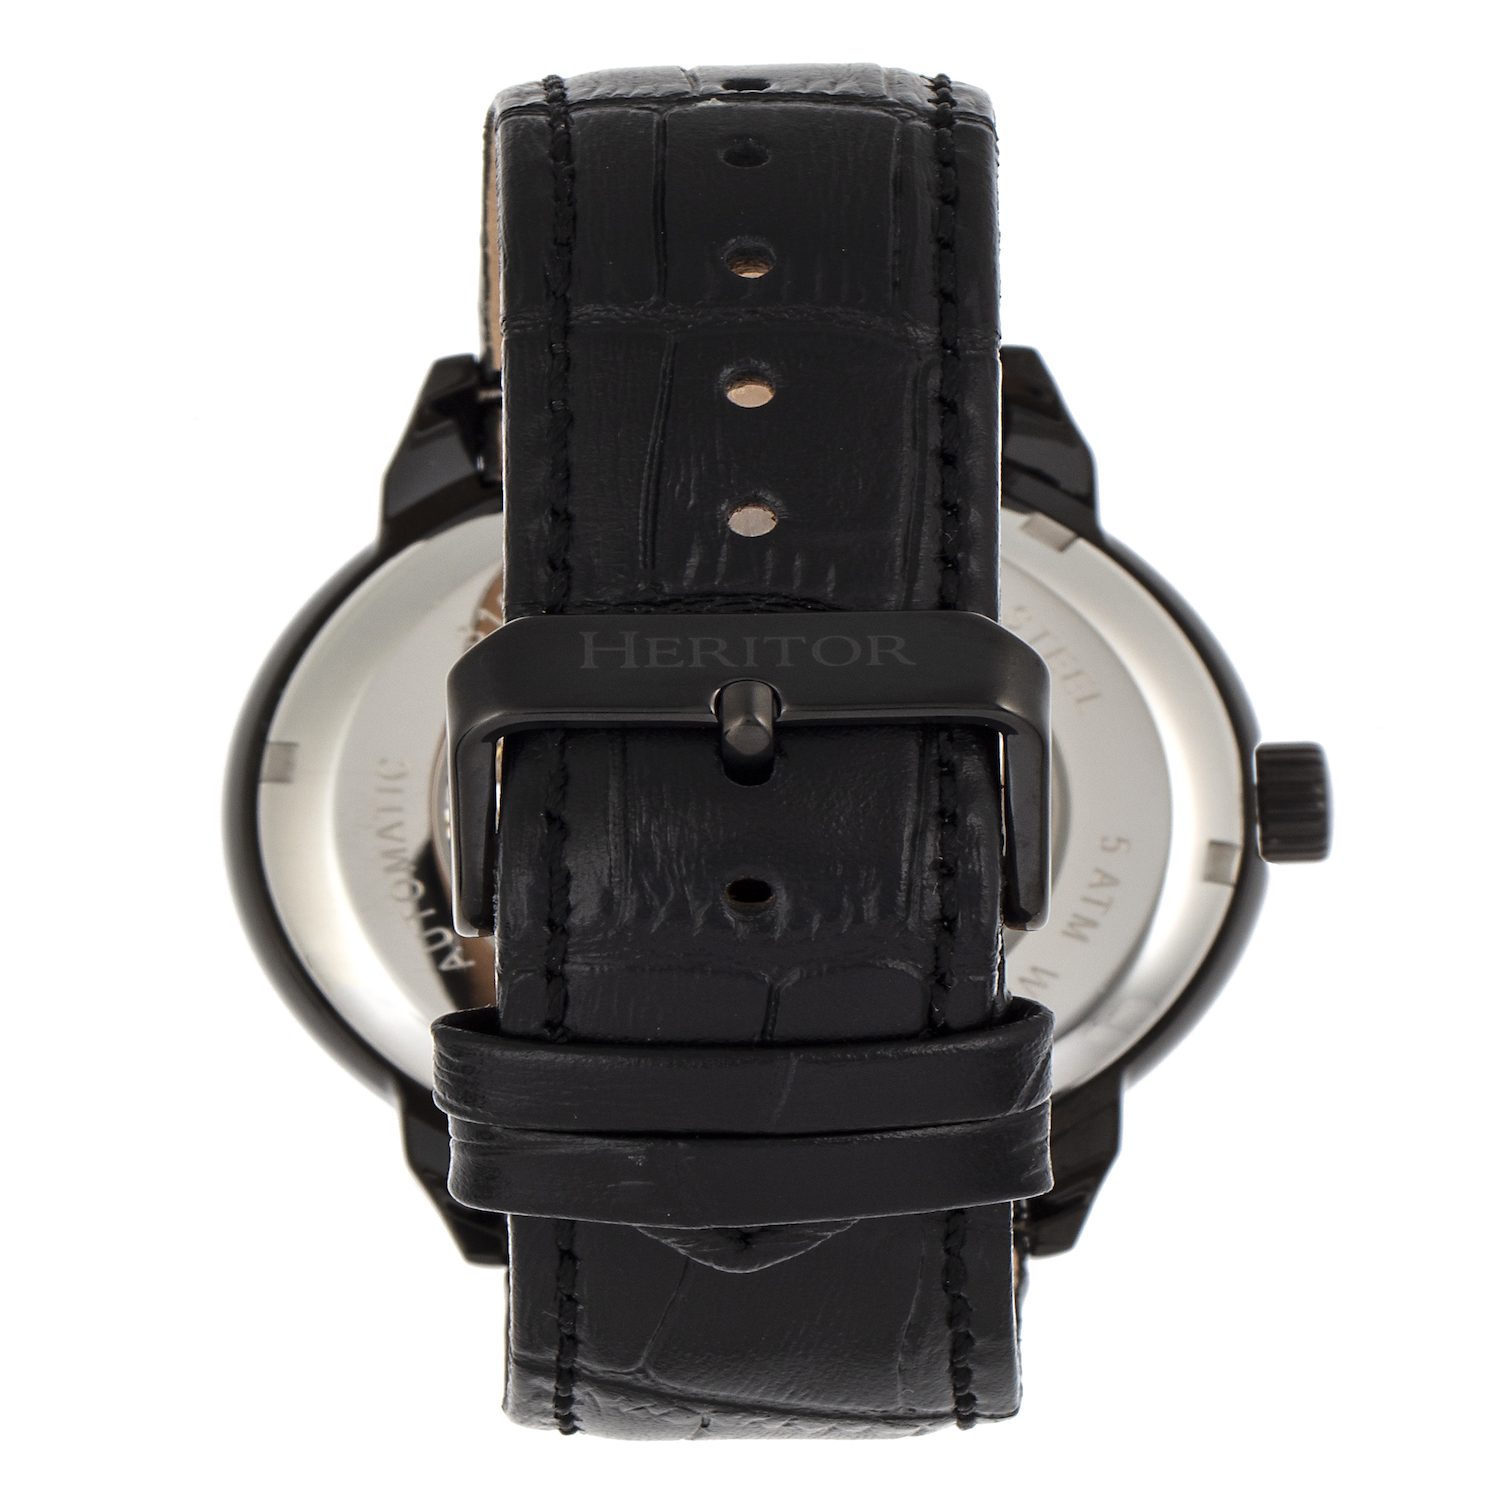 HERITOR Sanford Automatic Watch Black Bezel, Black Dial with Black Leather Band (TPF Model HERHR8305)